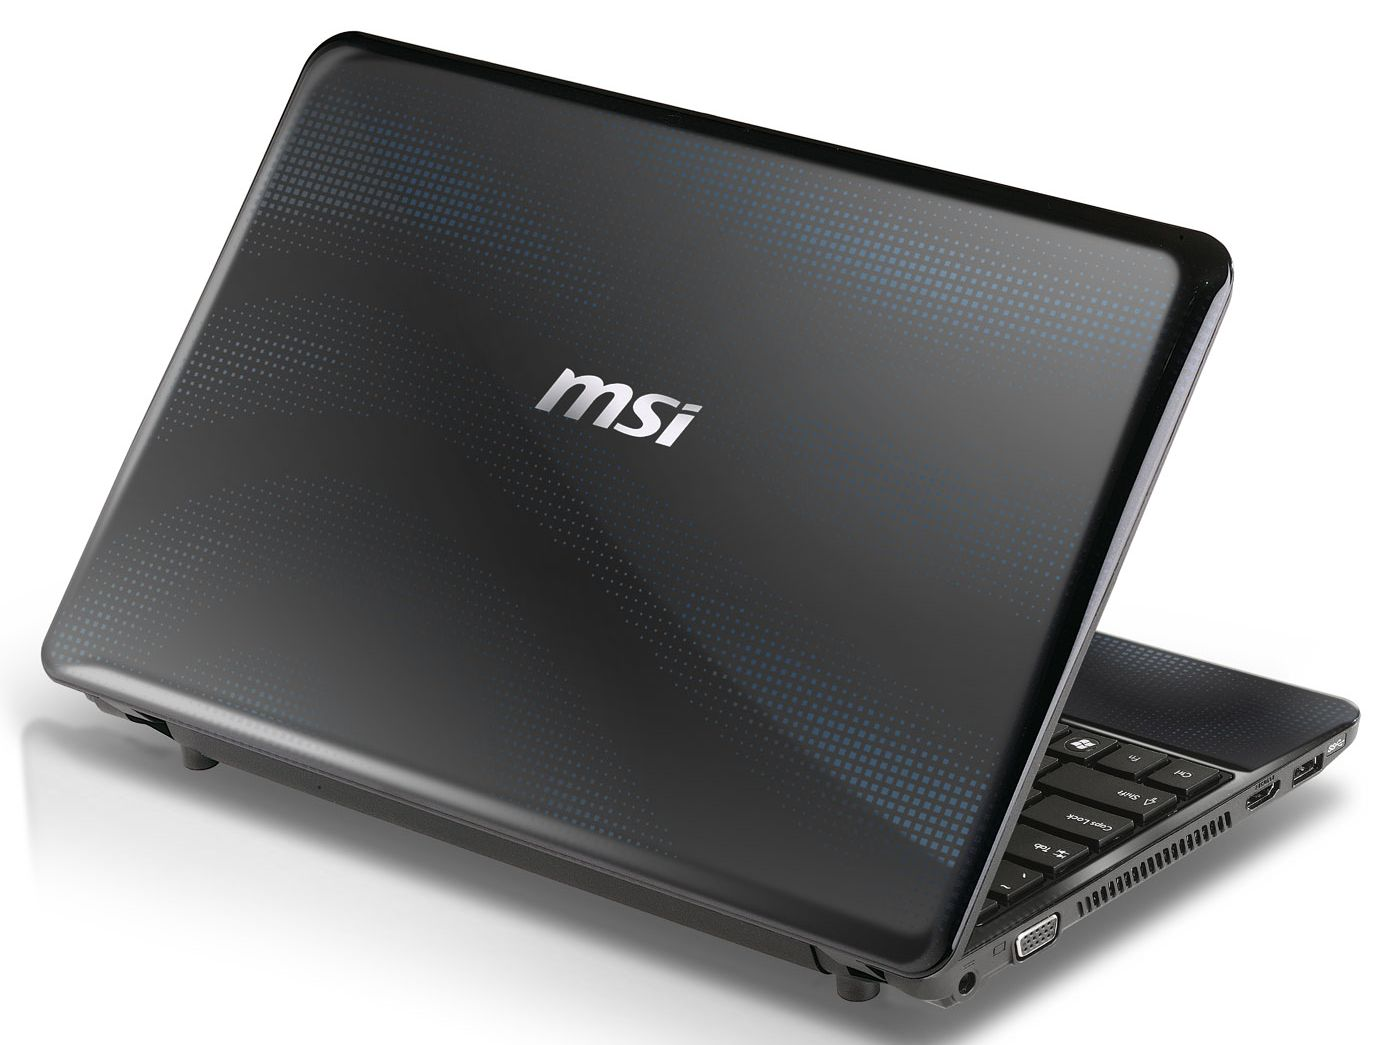 MSI GT680 Notebook iCharger Windows 7 64-BIT